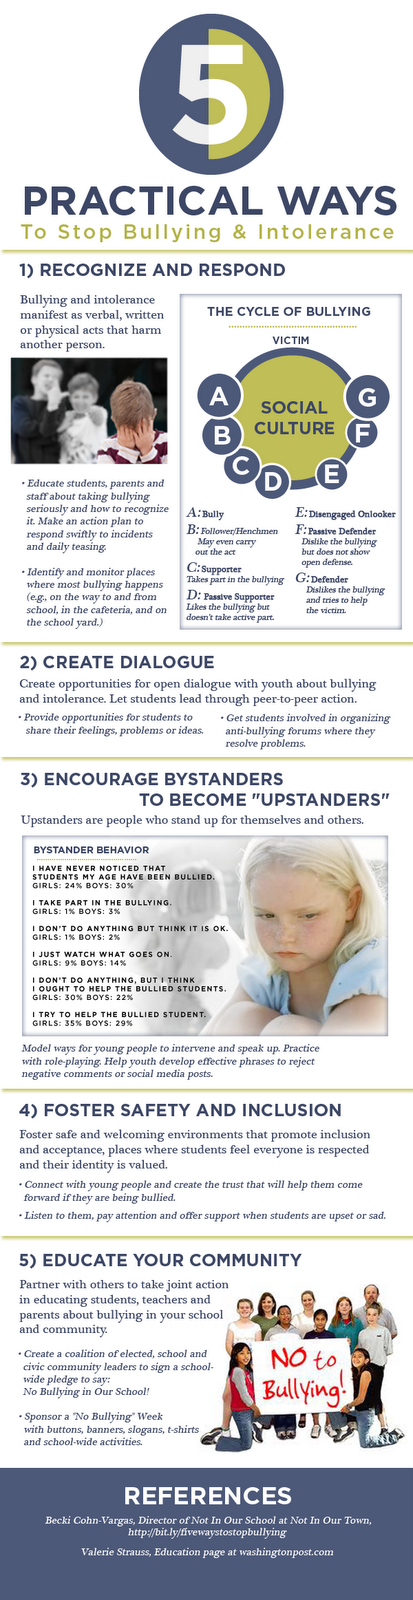 5 practical ways to stop Bullying and Intolerance